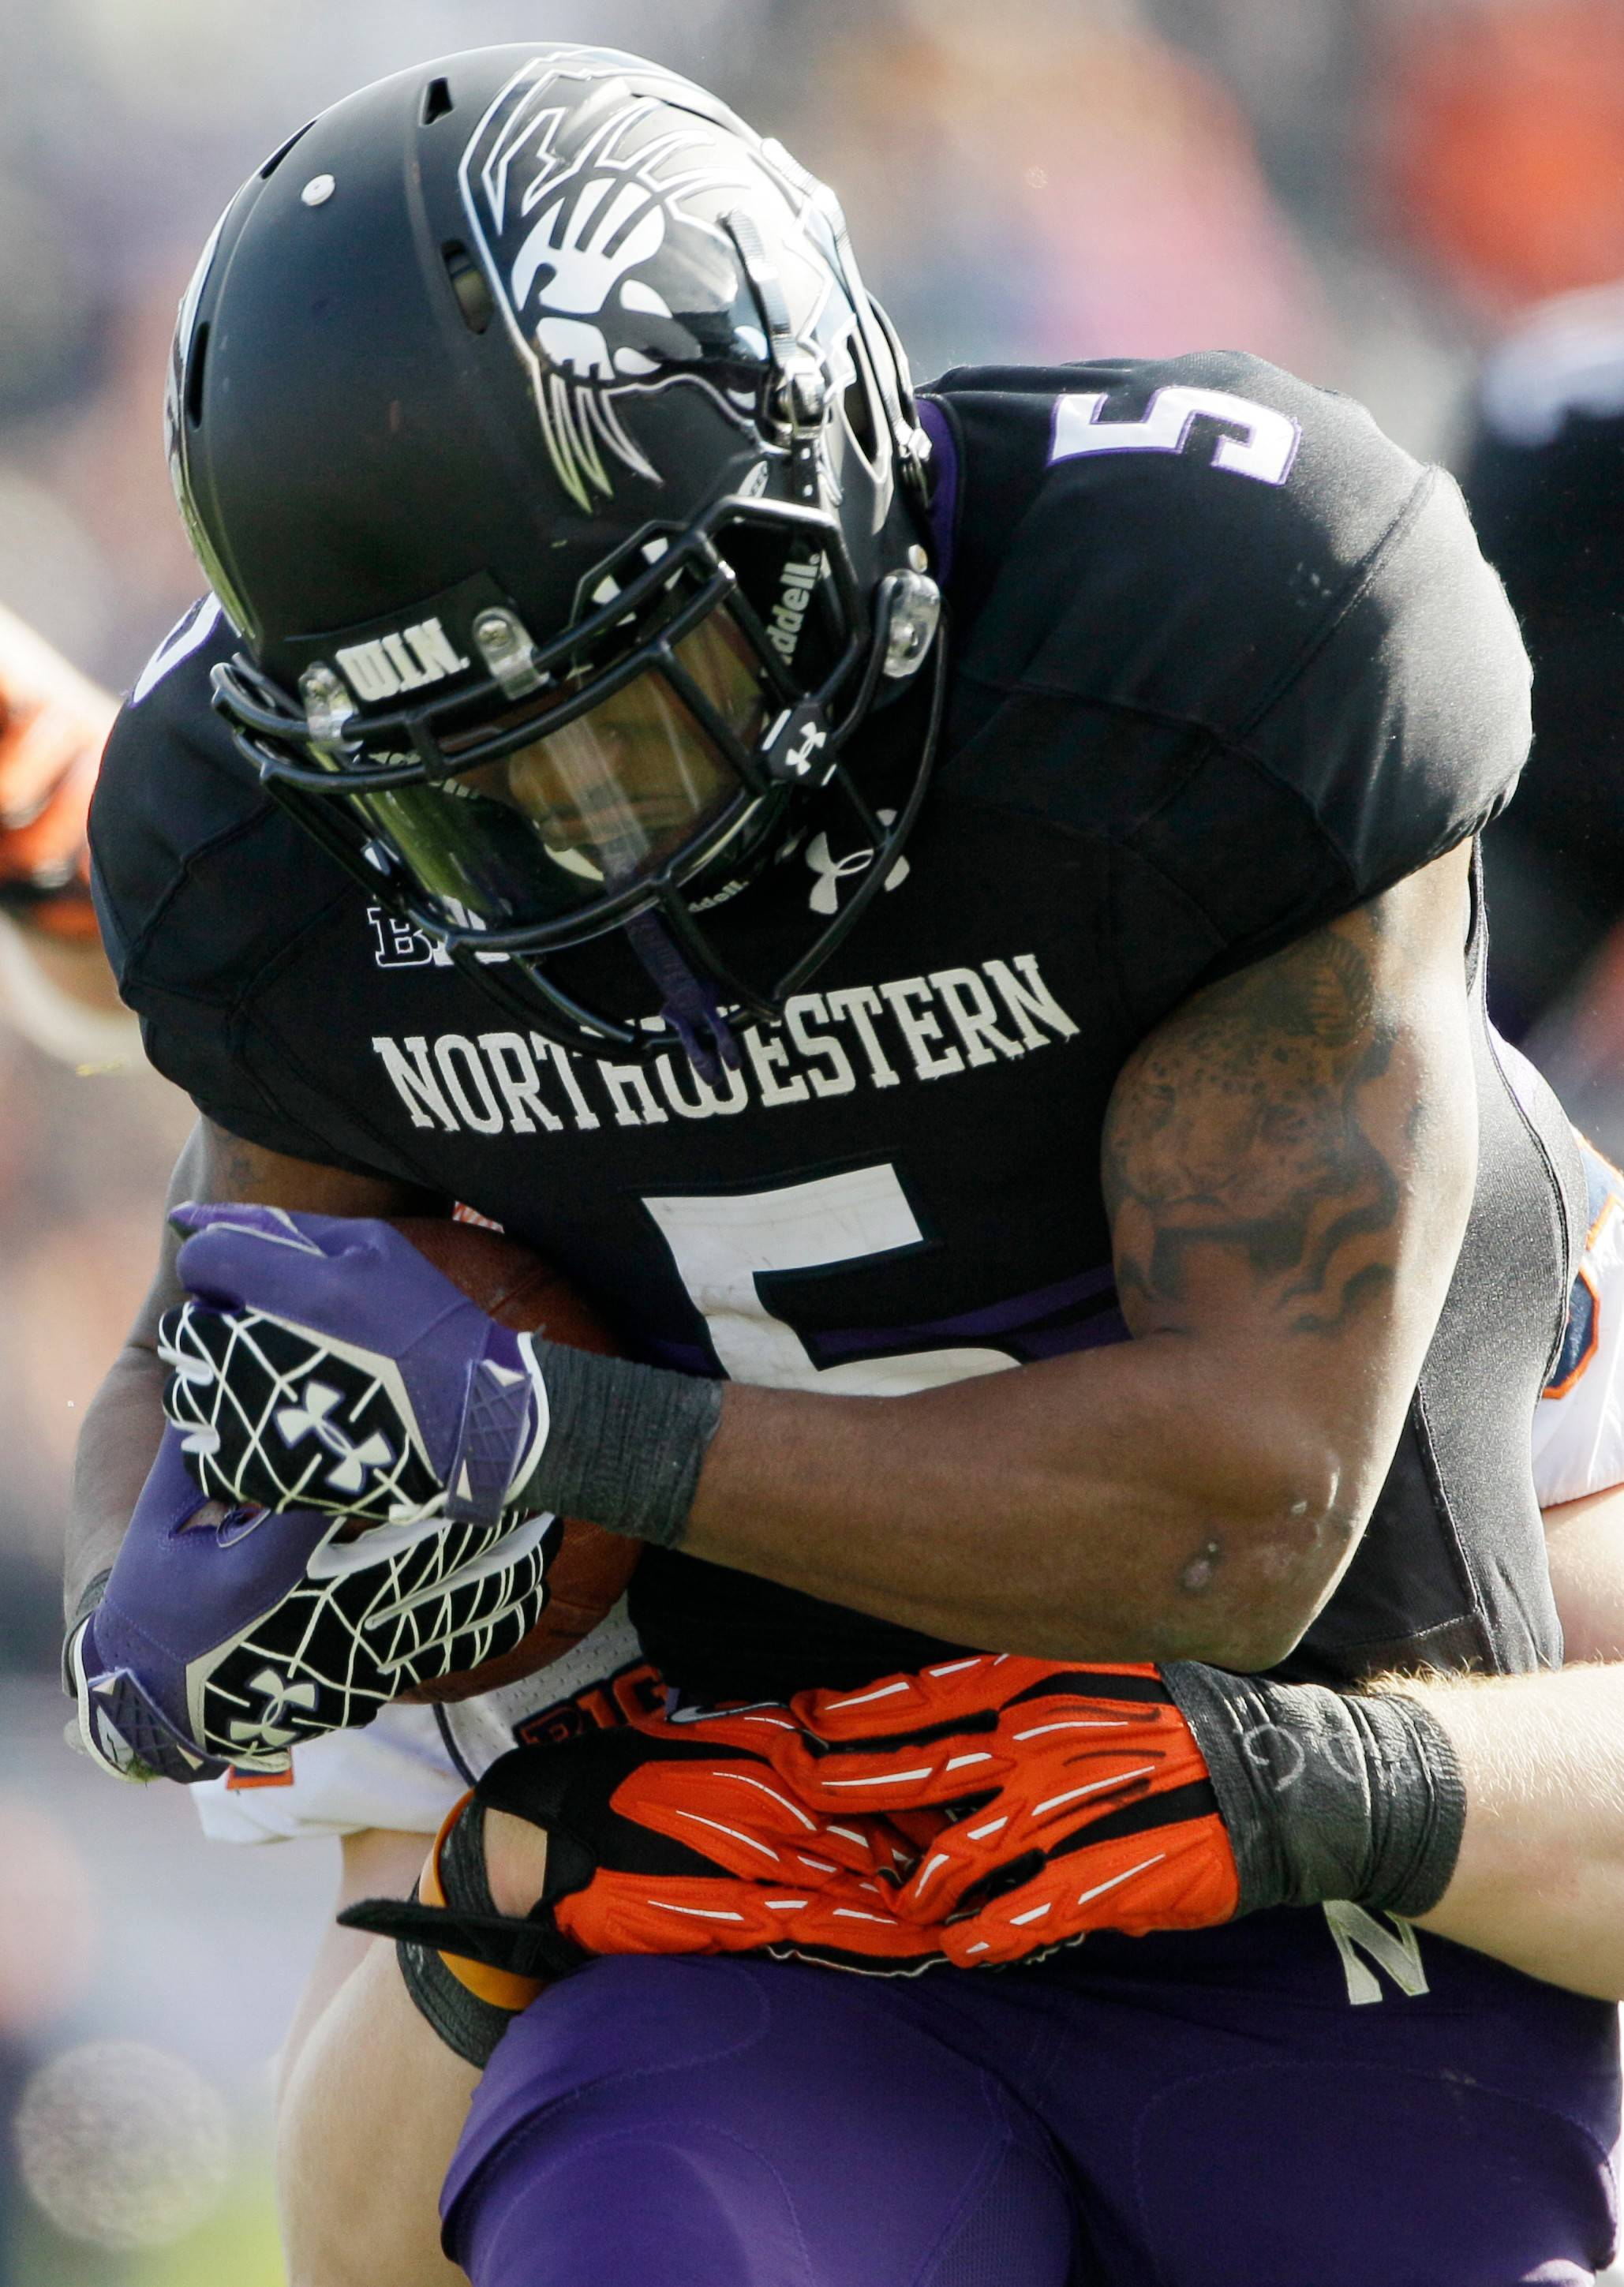 Northwestern running back Venric Mark (5) was suspended by school officials Friday and will miss the first two games of the season for coach Pat Fitzgerald's team.